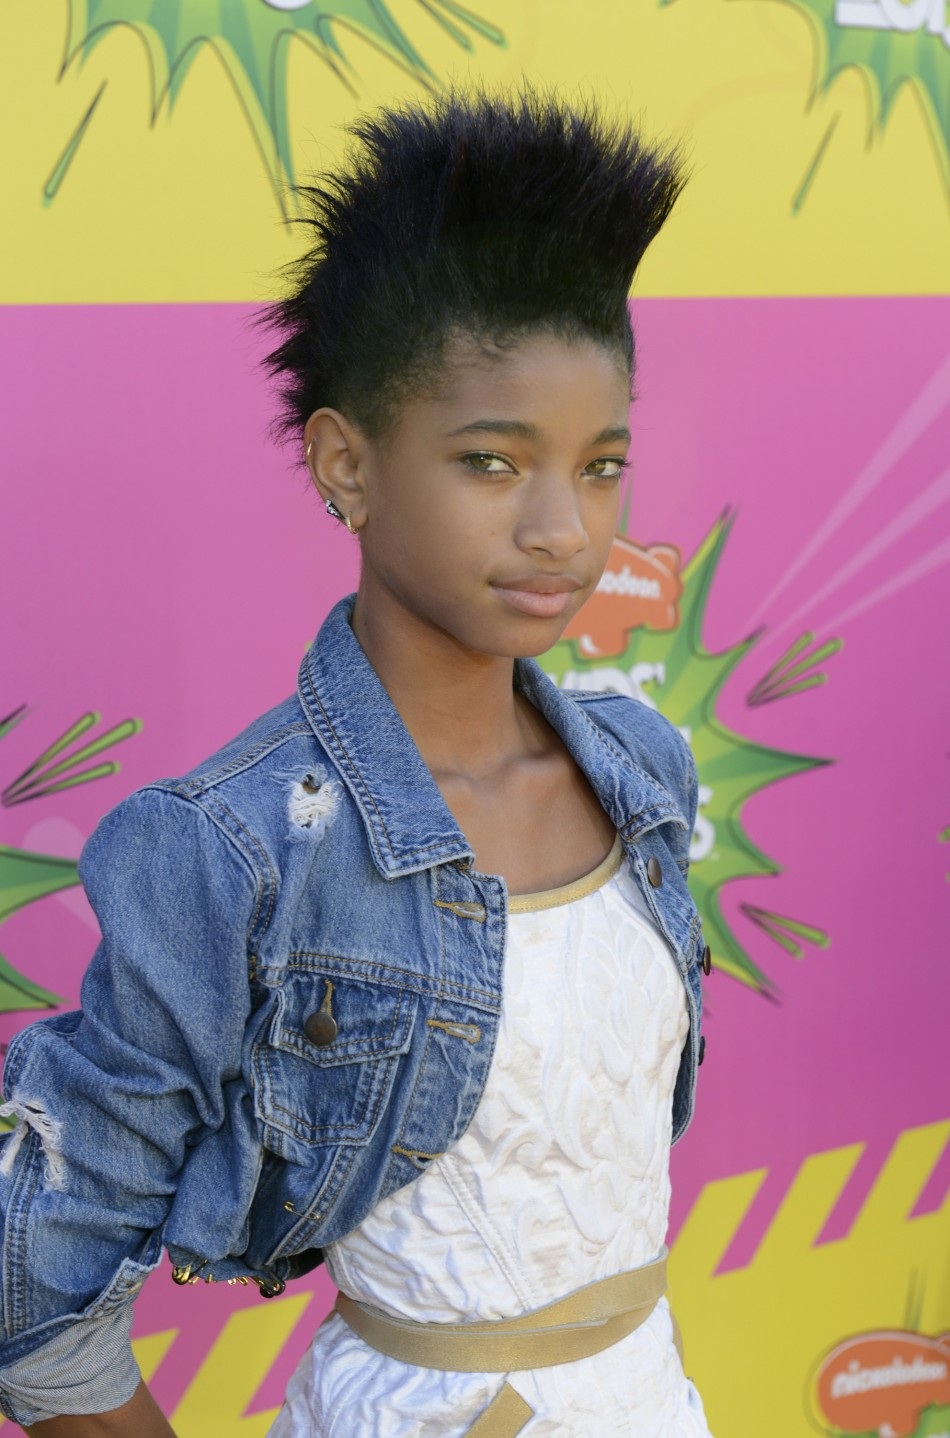 willow smith pictured in bed with shirtless actor mois233s arias